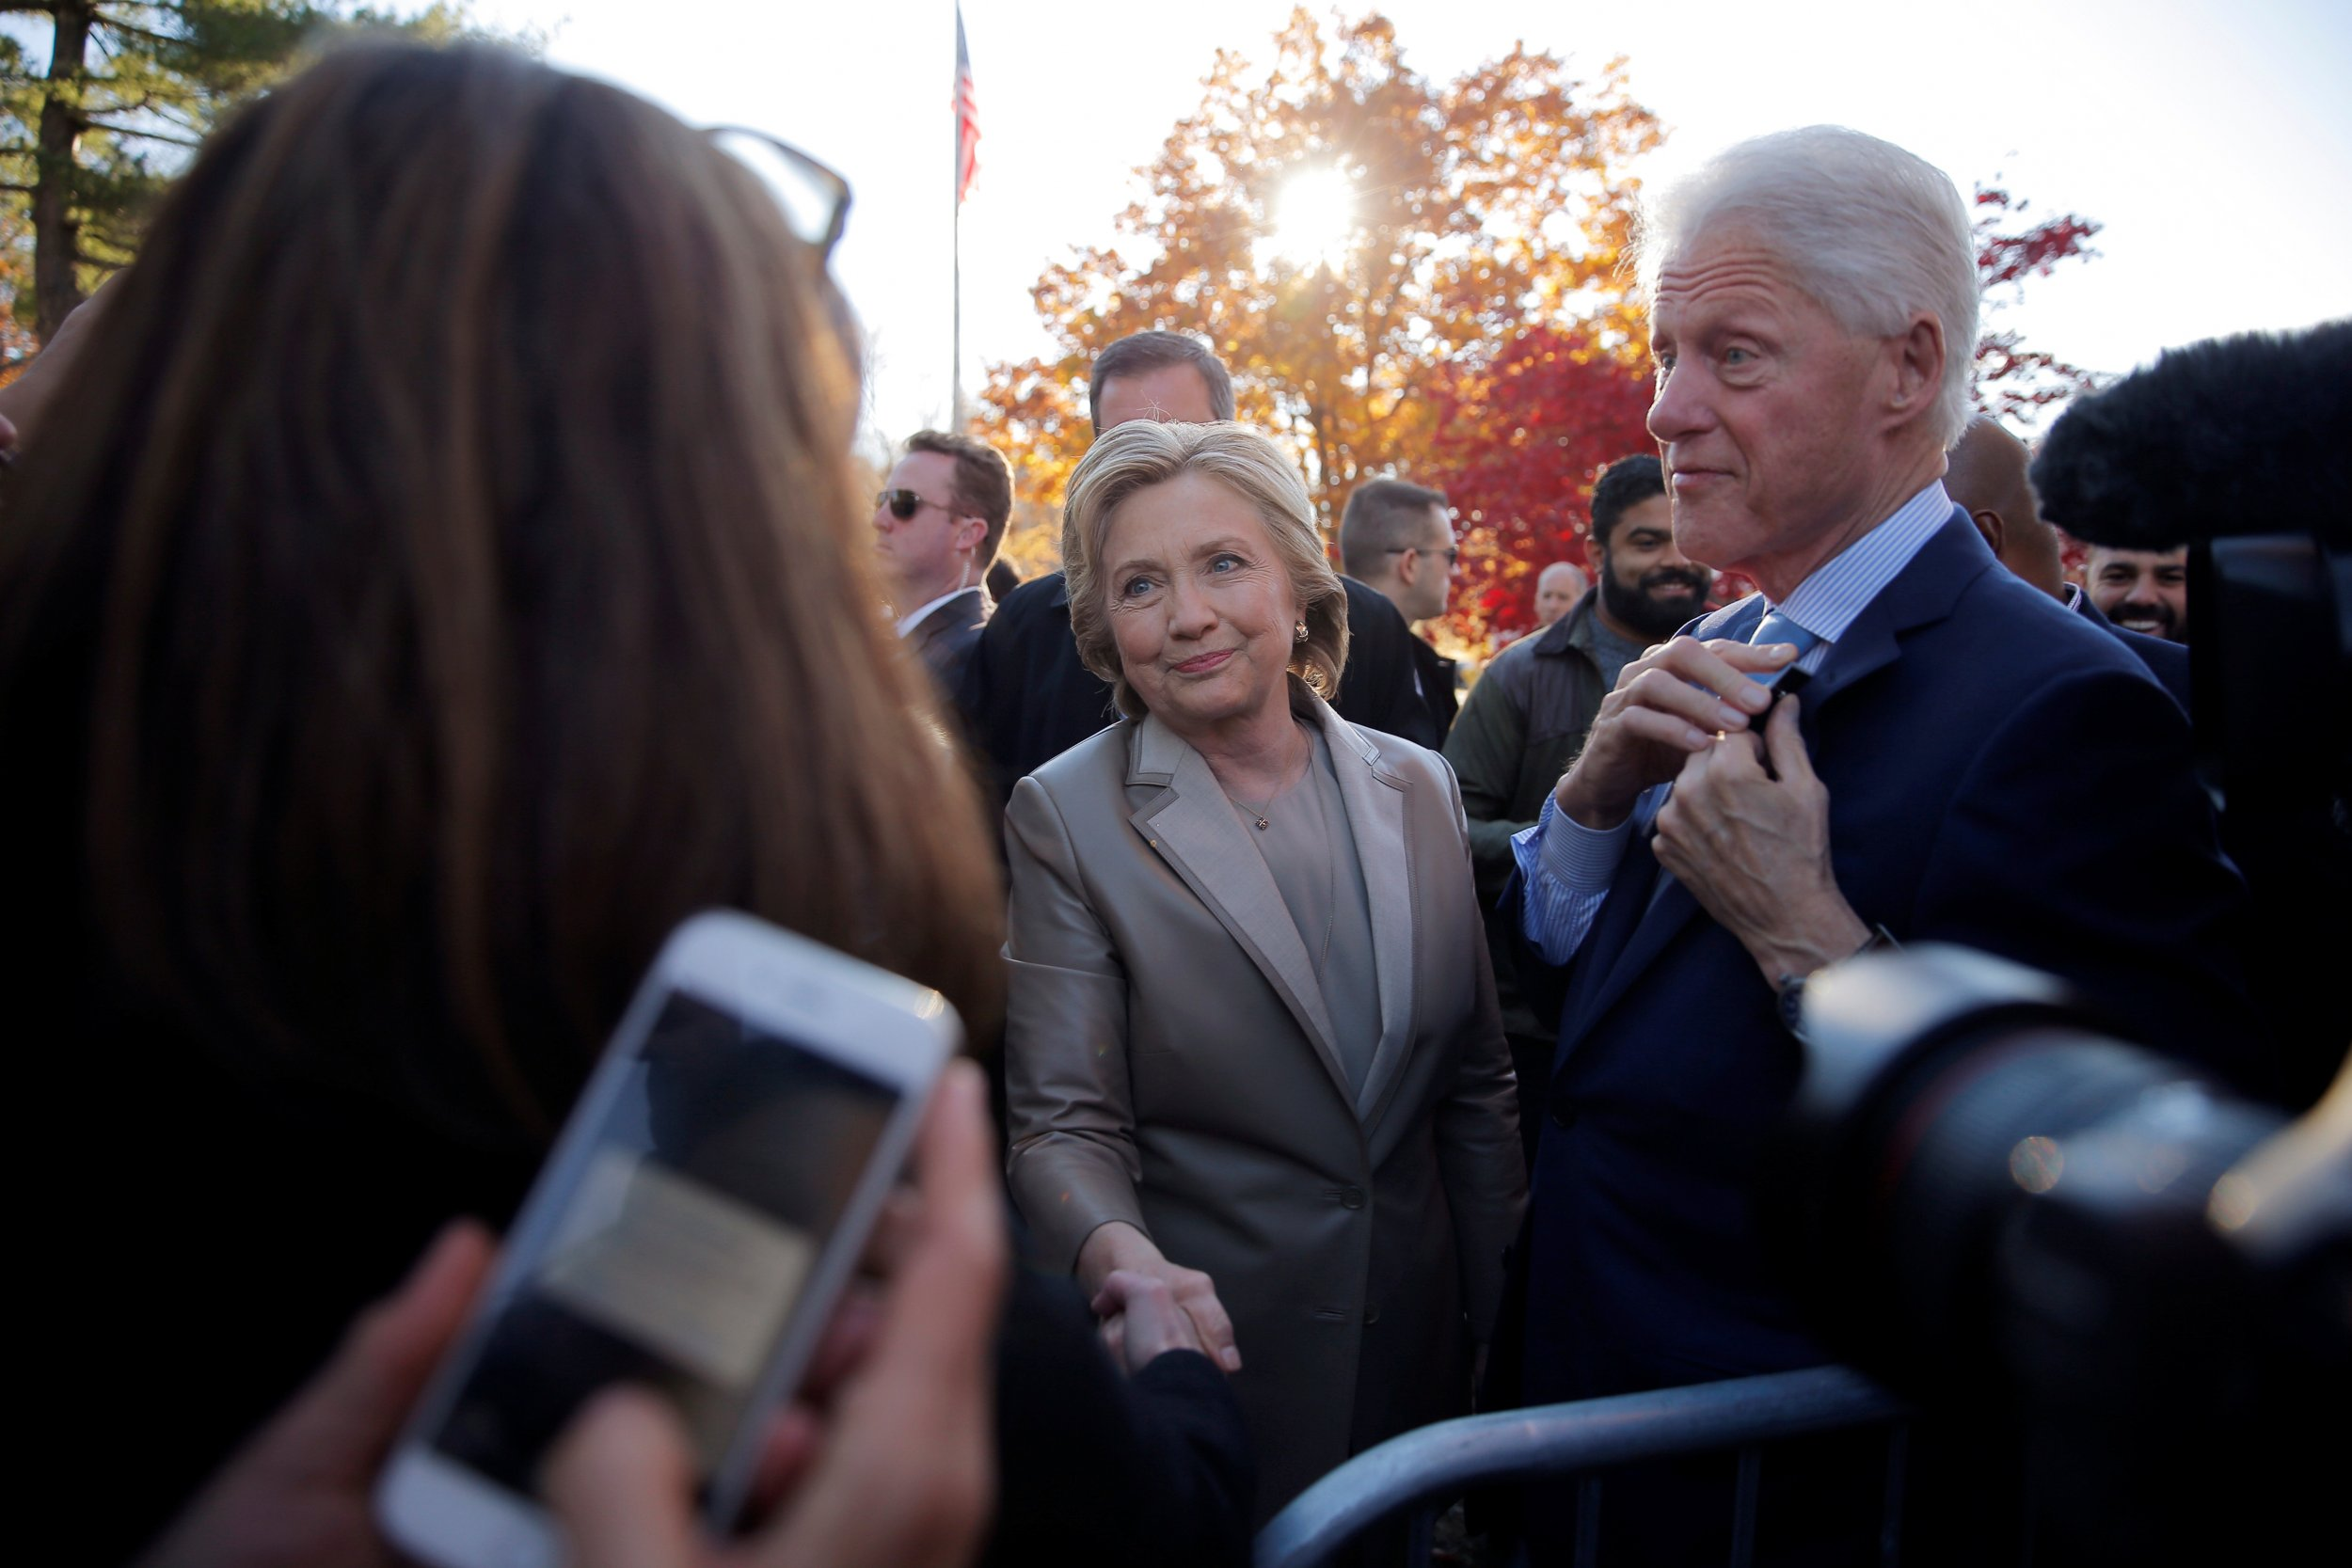 Did Hillary Clinton Help Bill Clinton Intimidate and Discredit His Rape and  Sexual Misconduct Accusers?